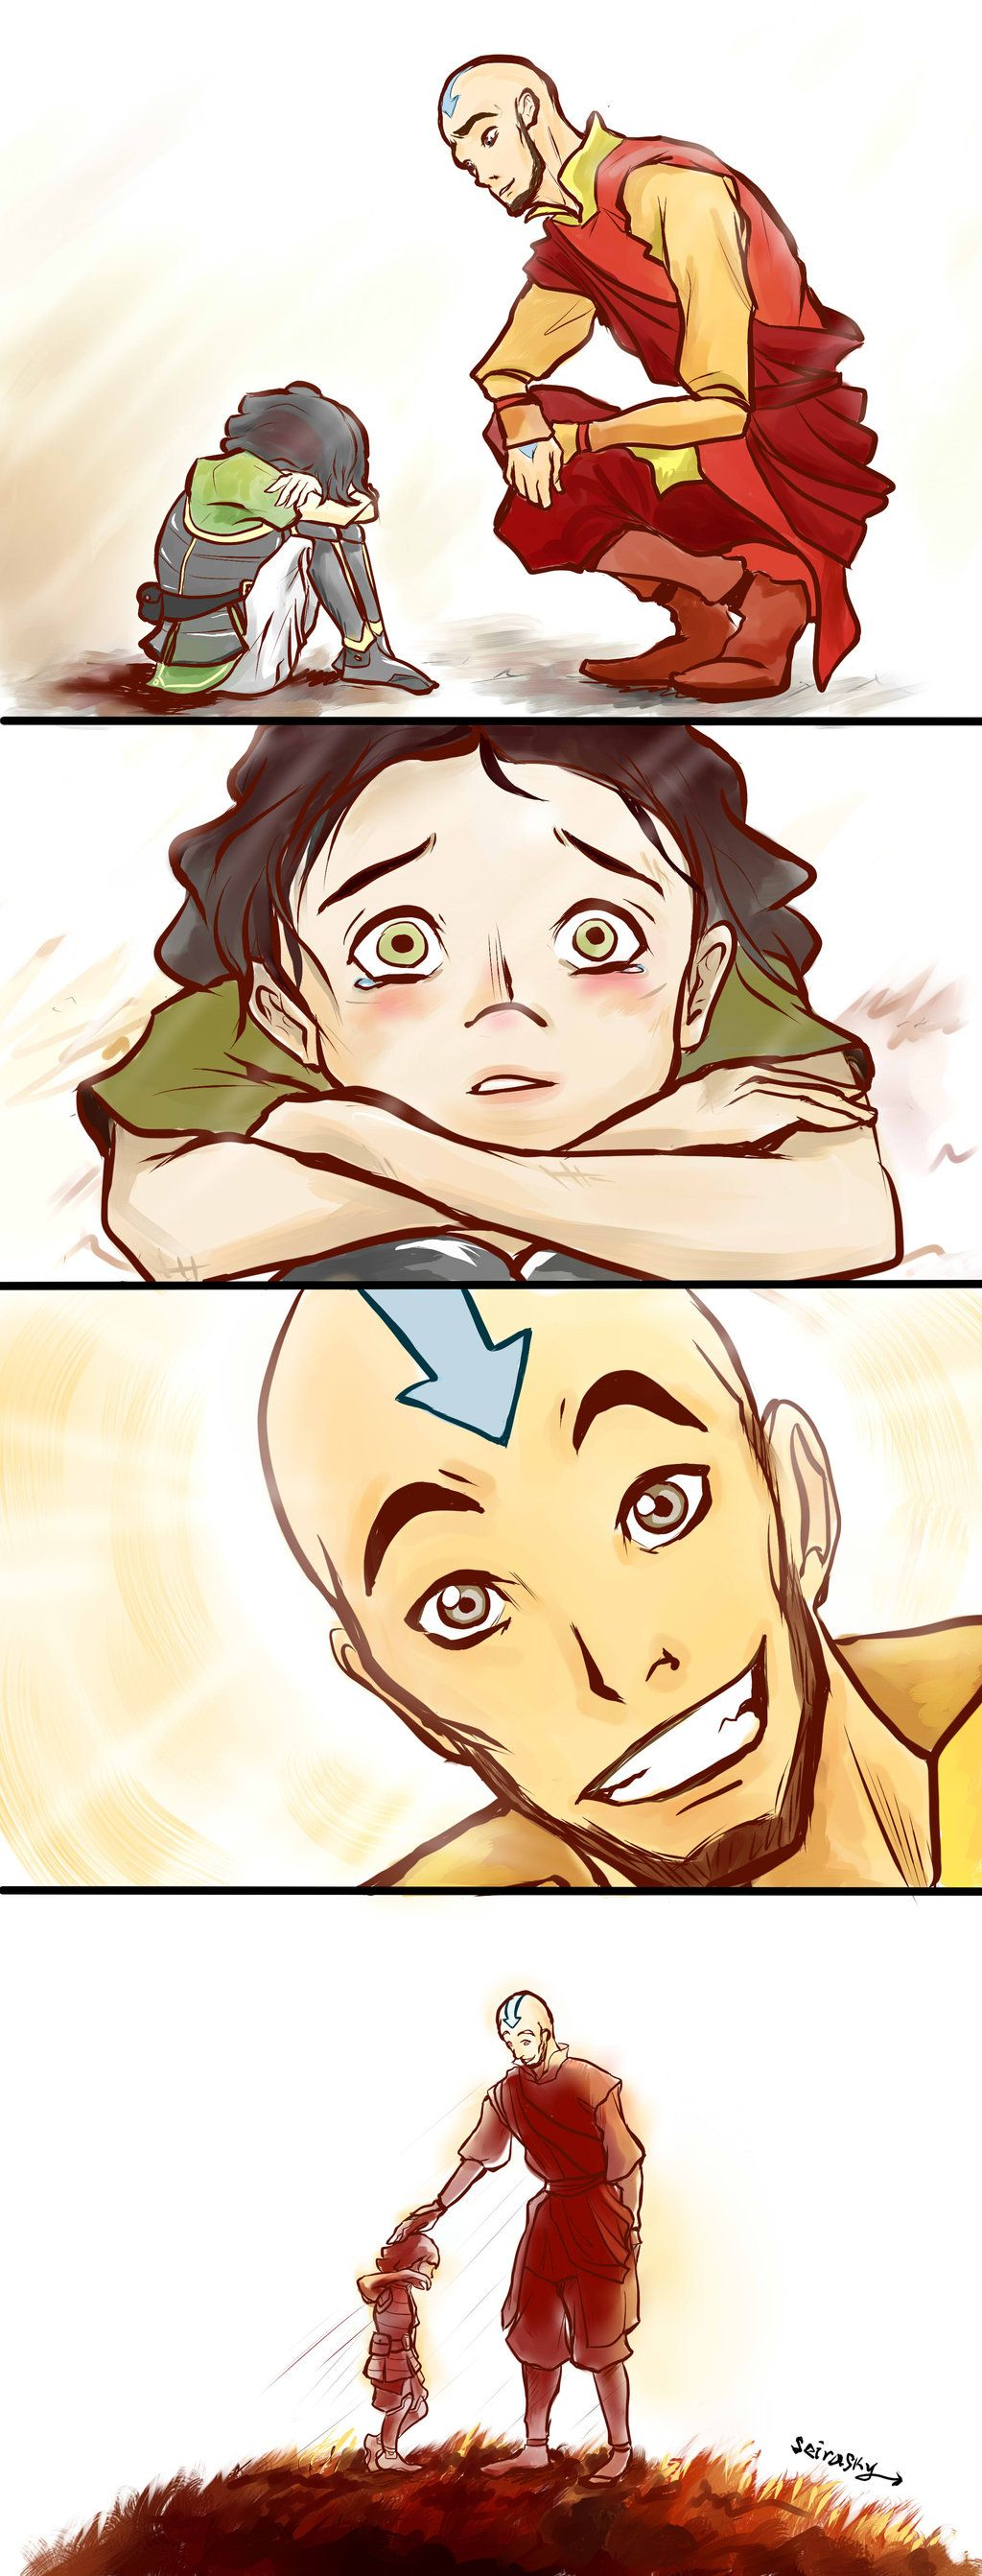 Aww! Lin! Did Tenzin push you down and say girls were